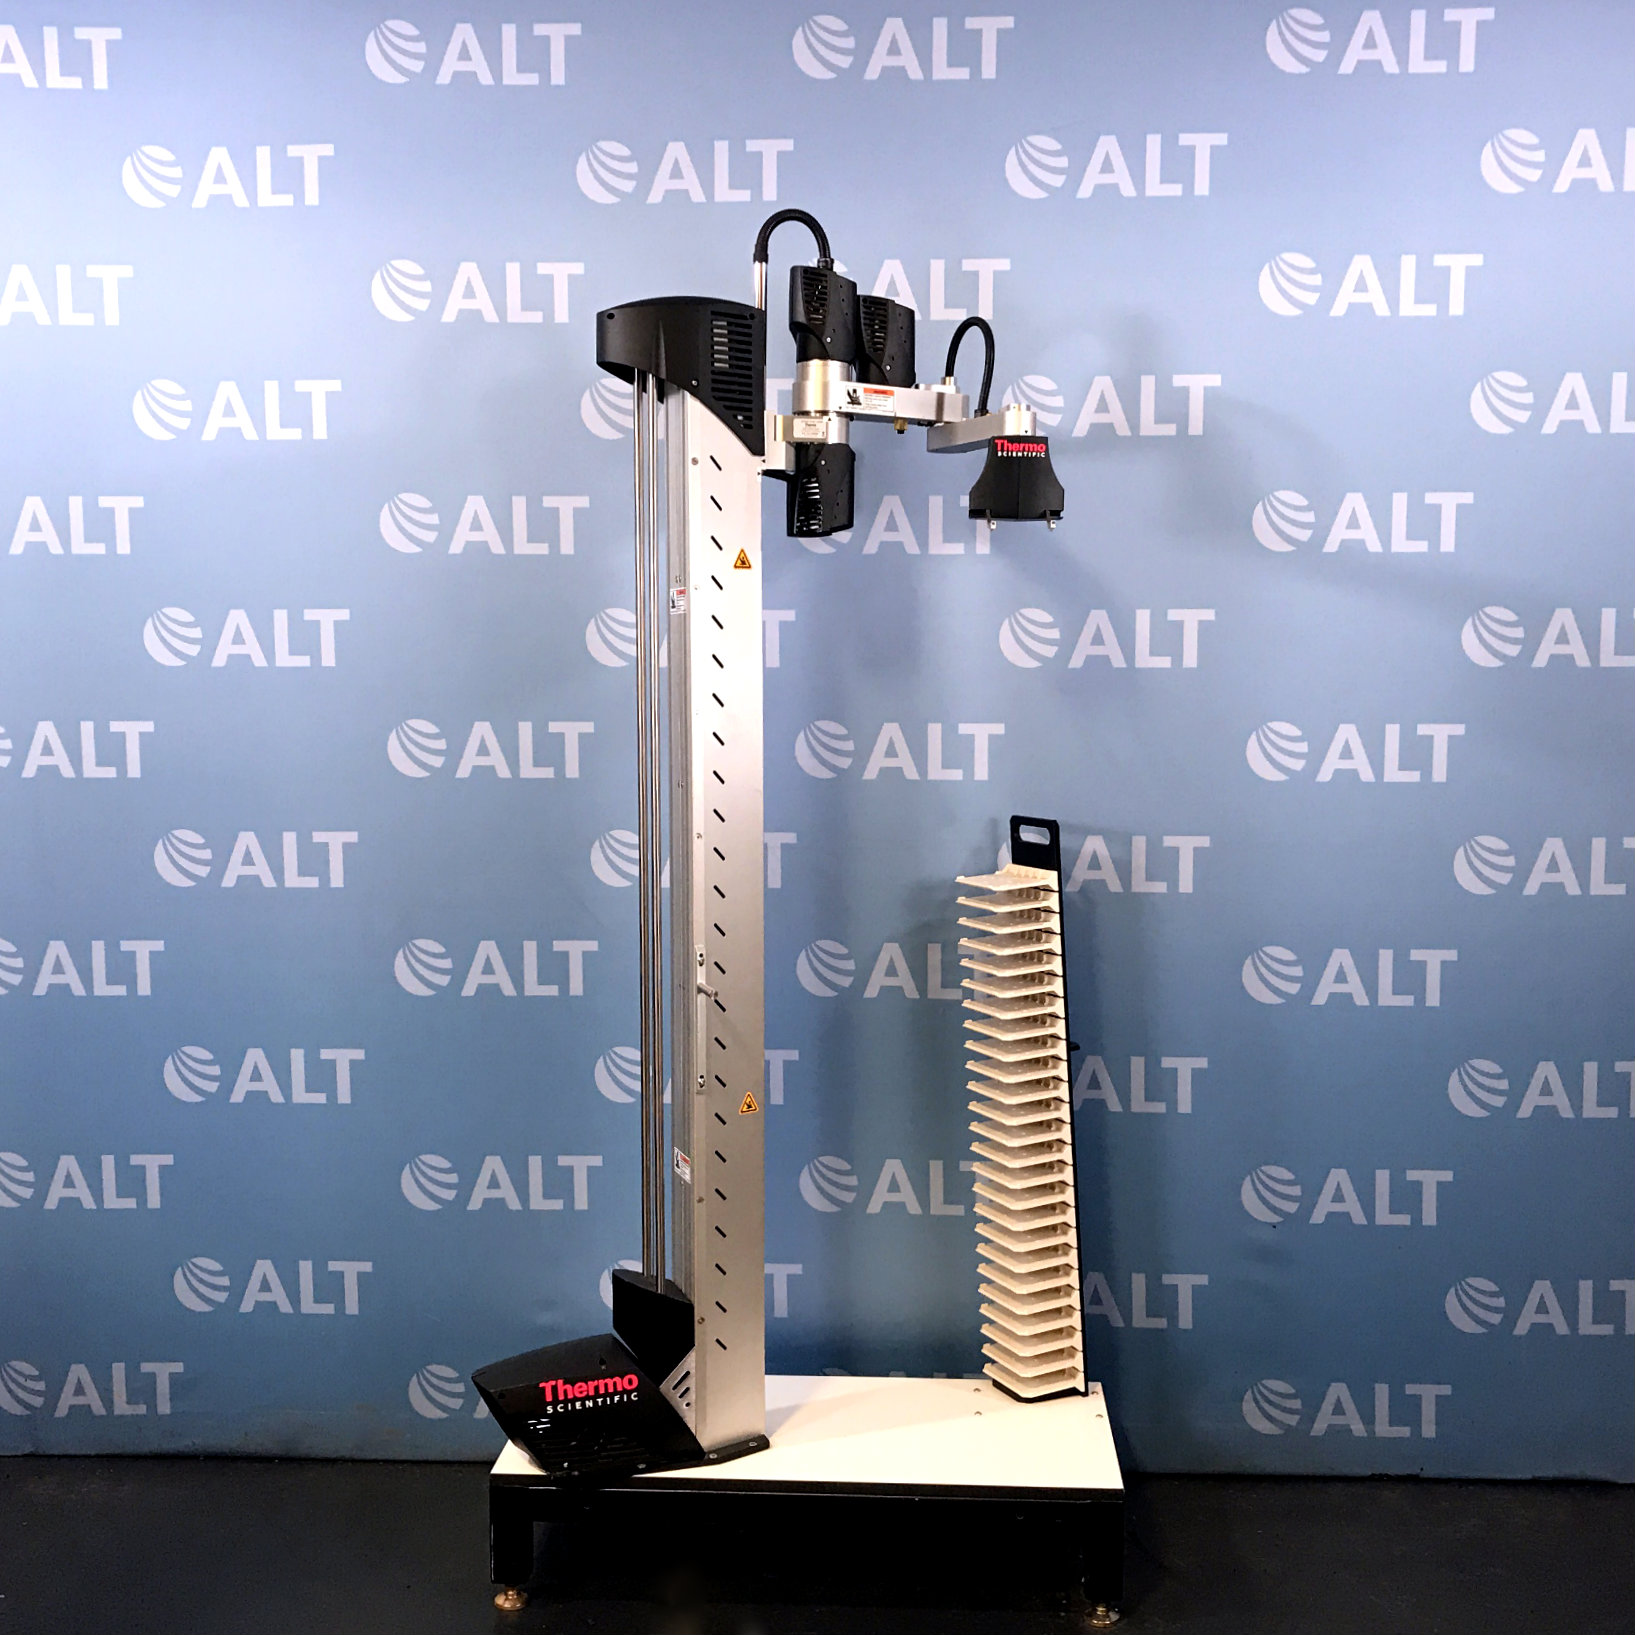 Thermo Scientific CRS VAL (Vertical Array Loader) Robotic Arm 62